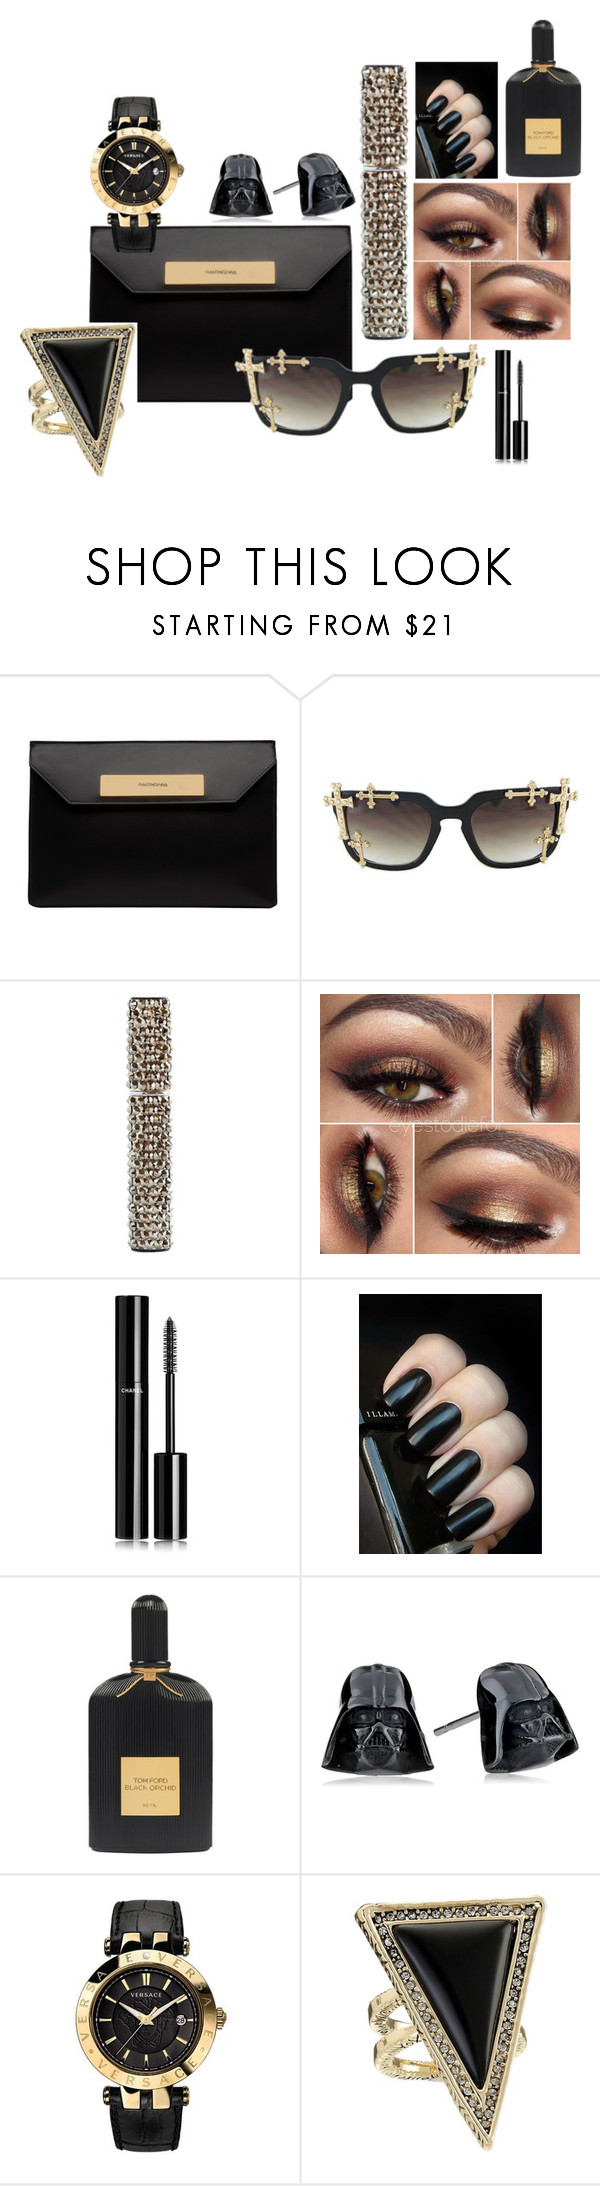 """""""The Dark Side"""" by crystalcult on Polyvore featuring beauty, Balenciaga, Chanel, Tom Ford, Versace and House of Harlow 1960"""